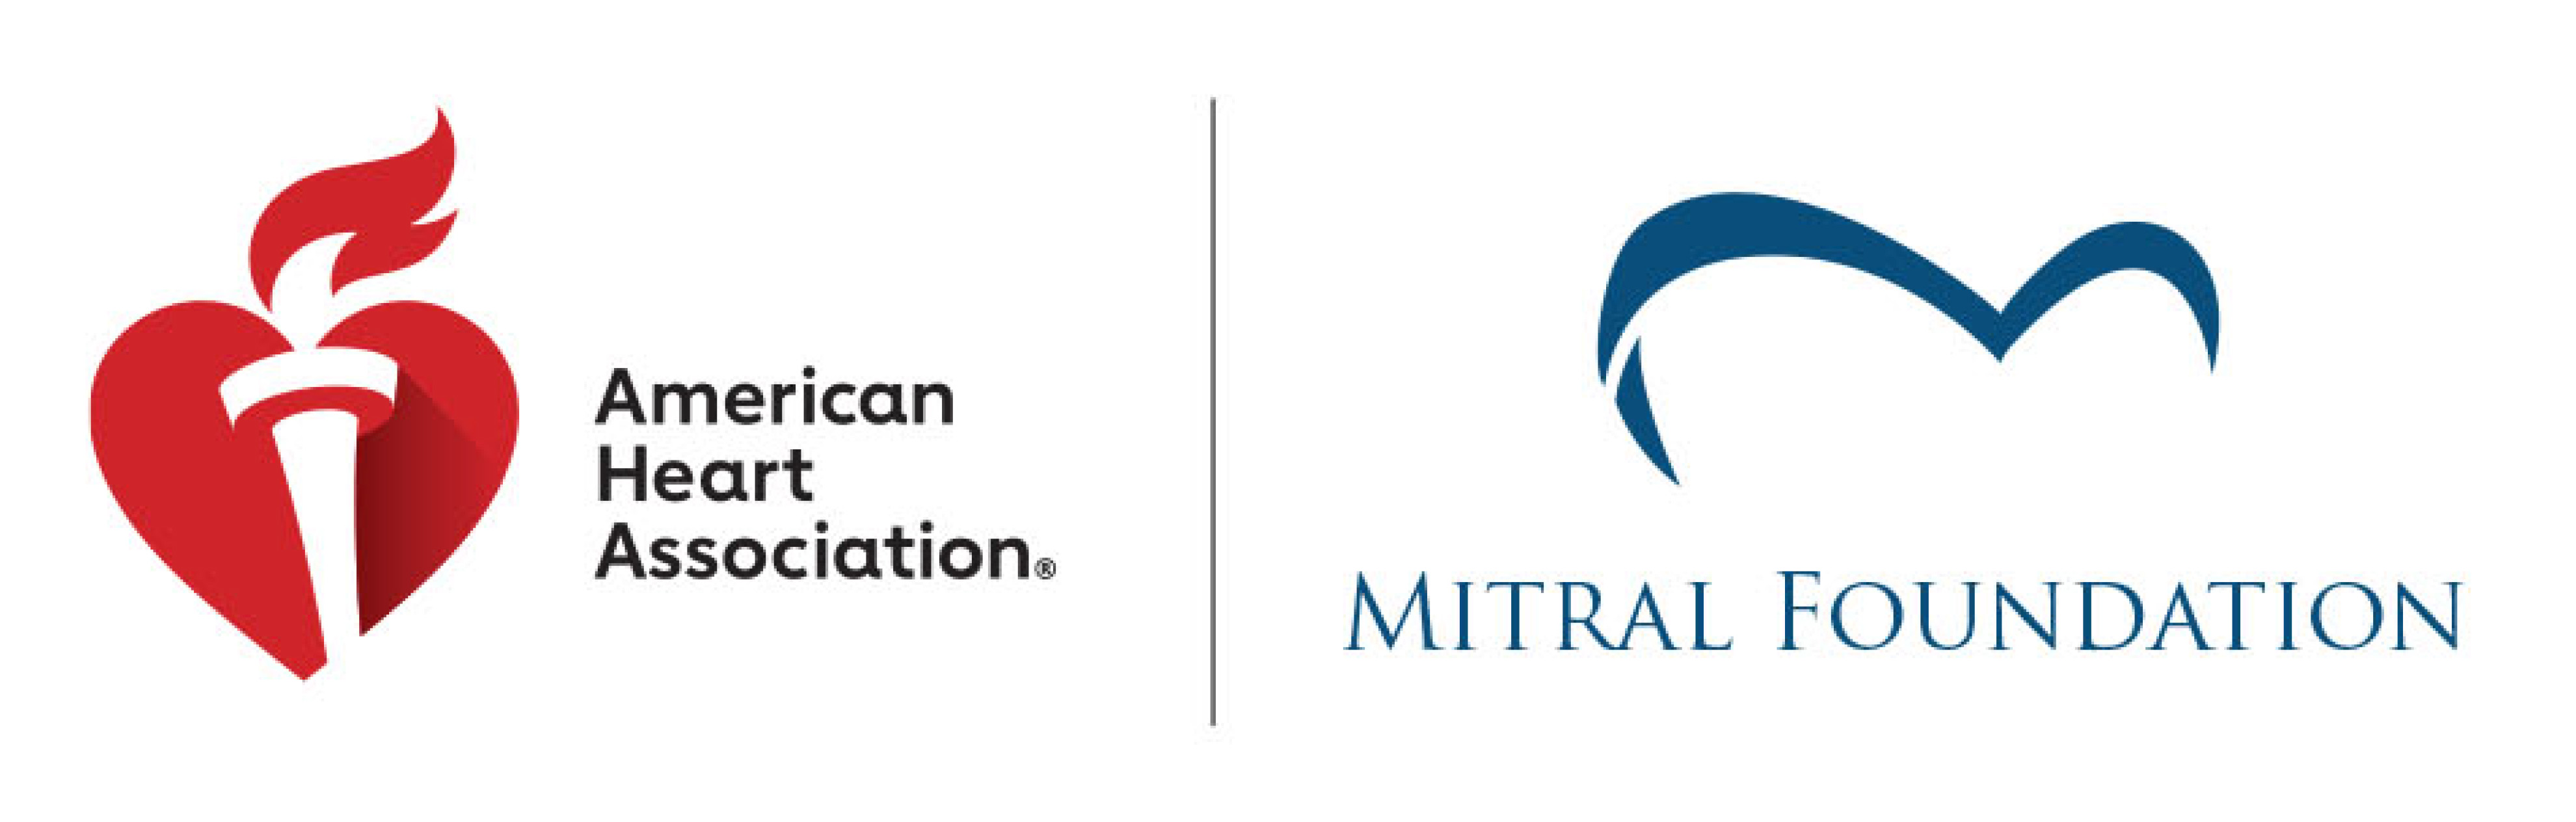 American Heart Association and Mitral Foundation co-brand logo